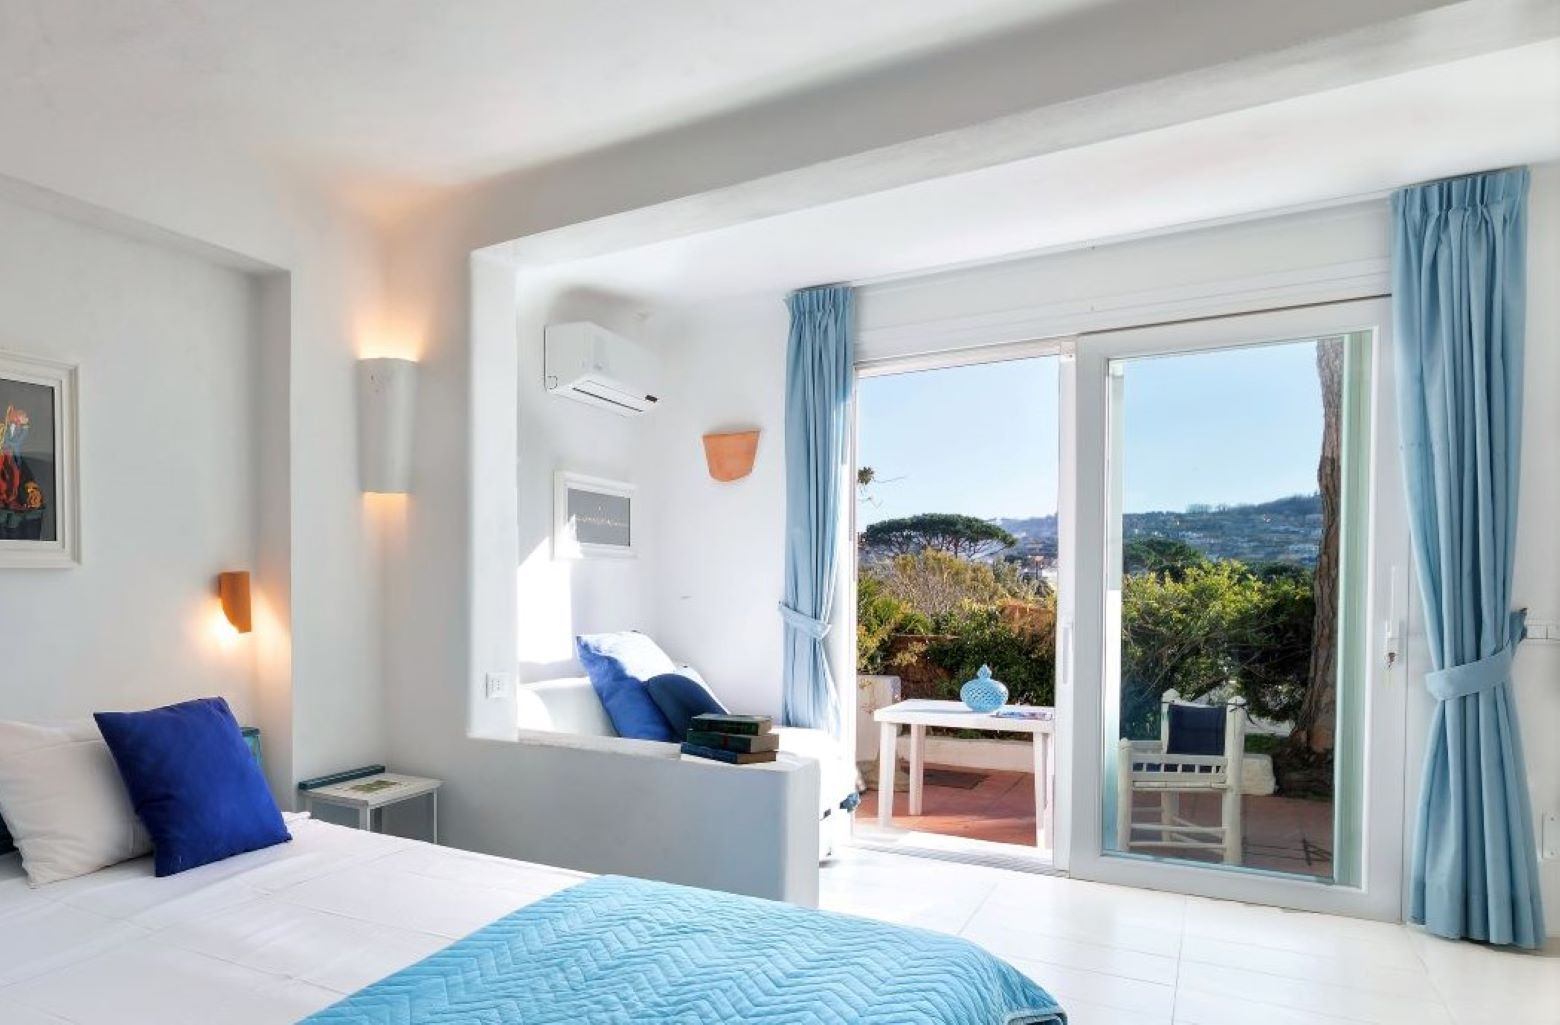 Ischia Room for Bed and breakfast accommodation